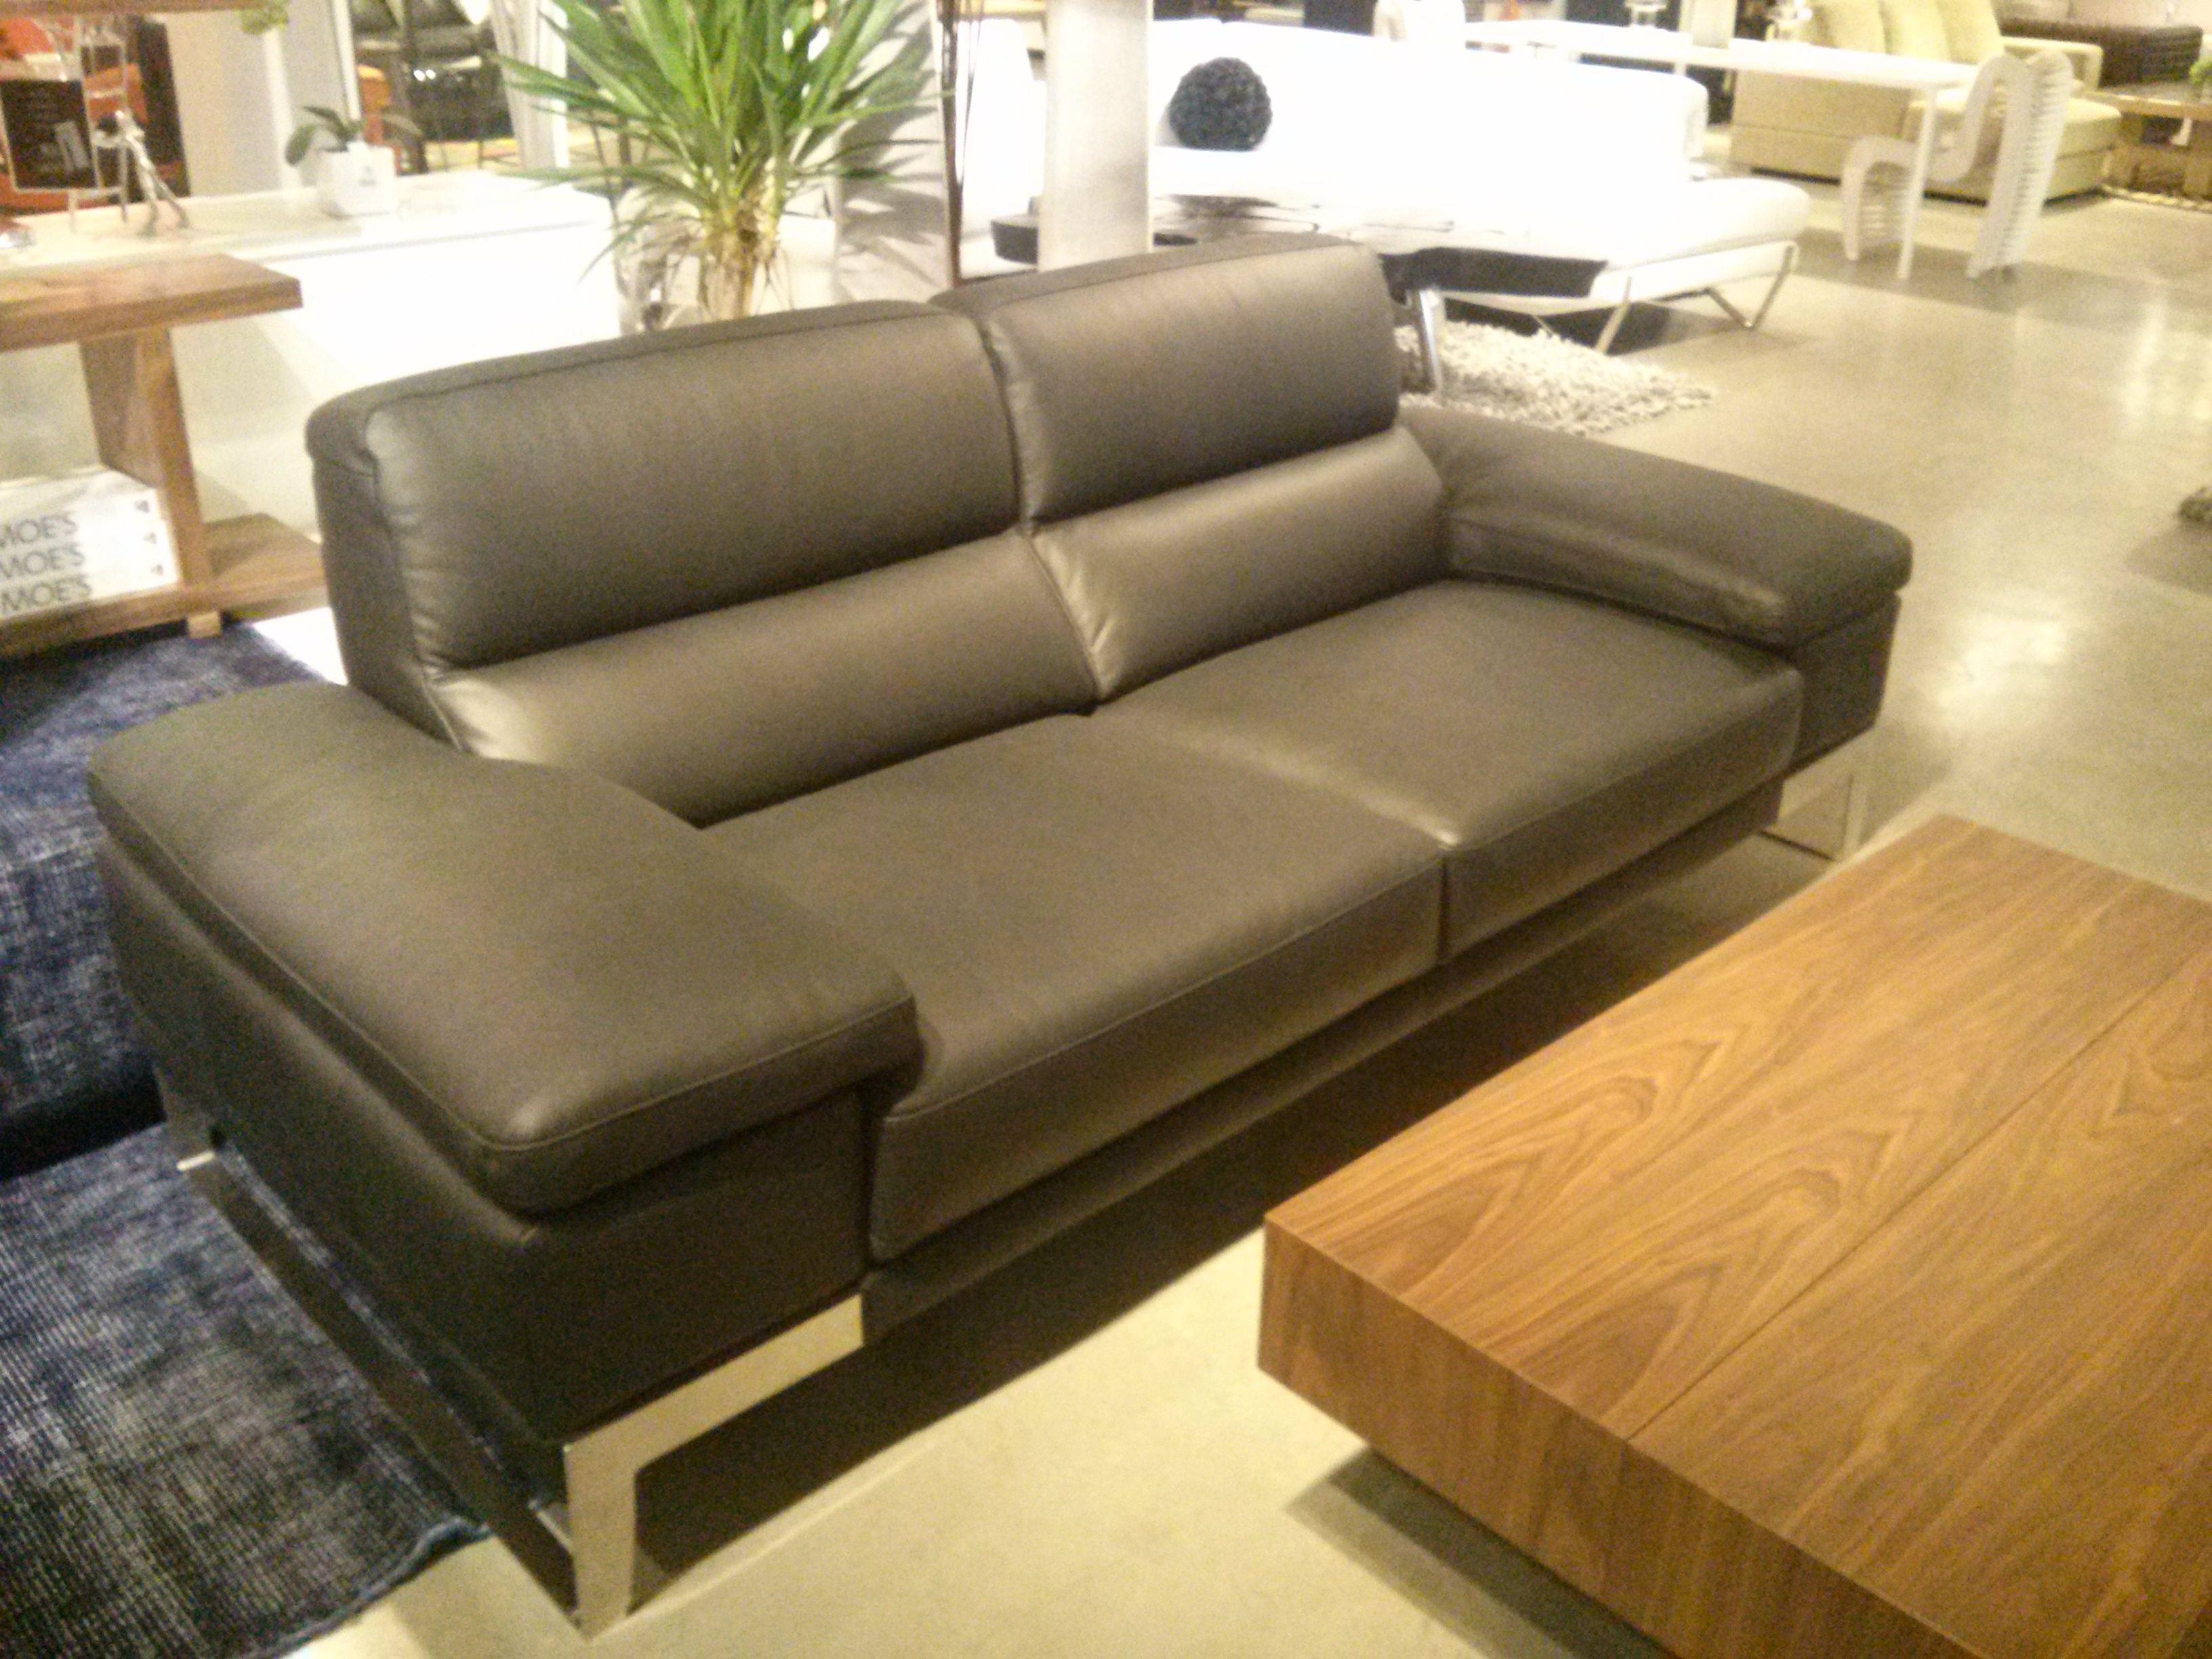 Asiago Sofa By Nicoletti Black Top Grain Leather With Stainless